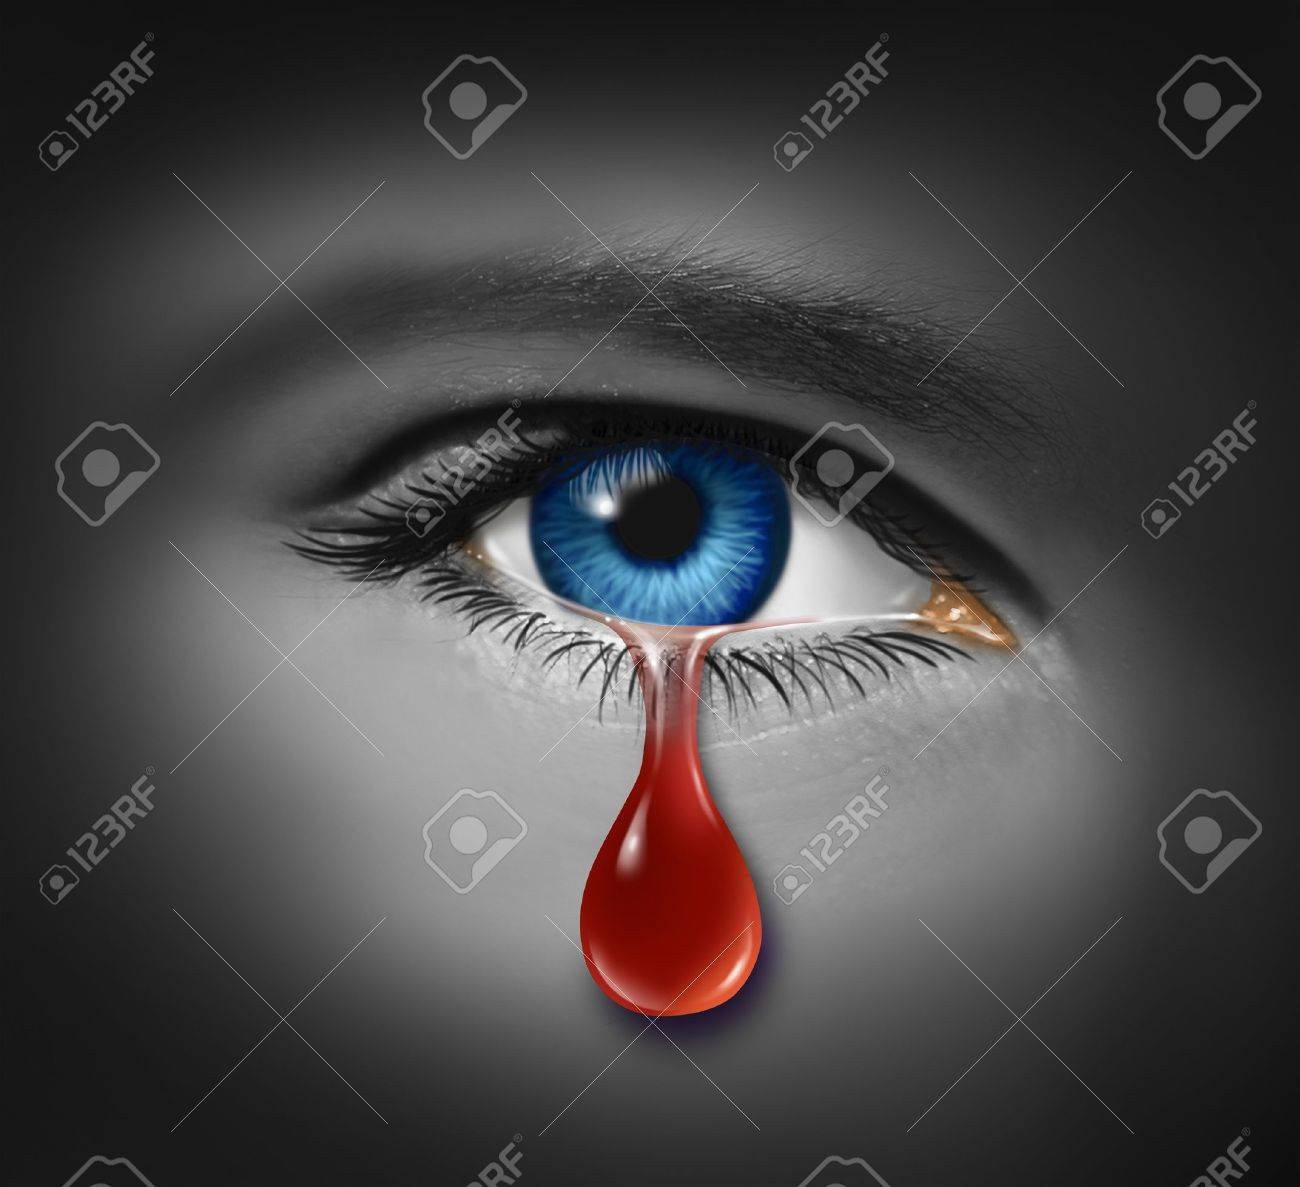 Violent crime concept with a close up of an eye ball crying with a tear of blood Stock Photo - 12667493